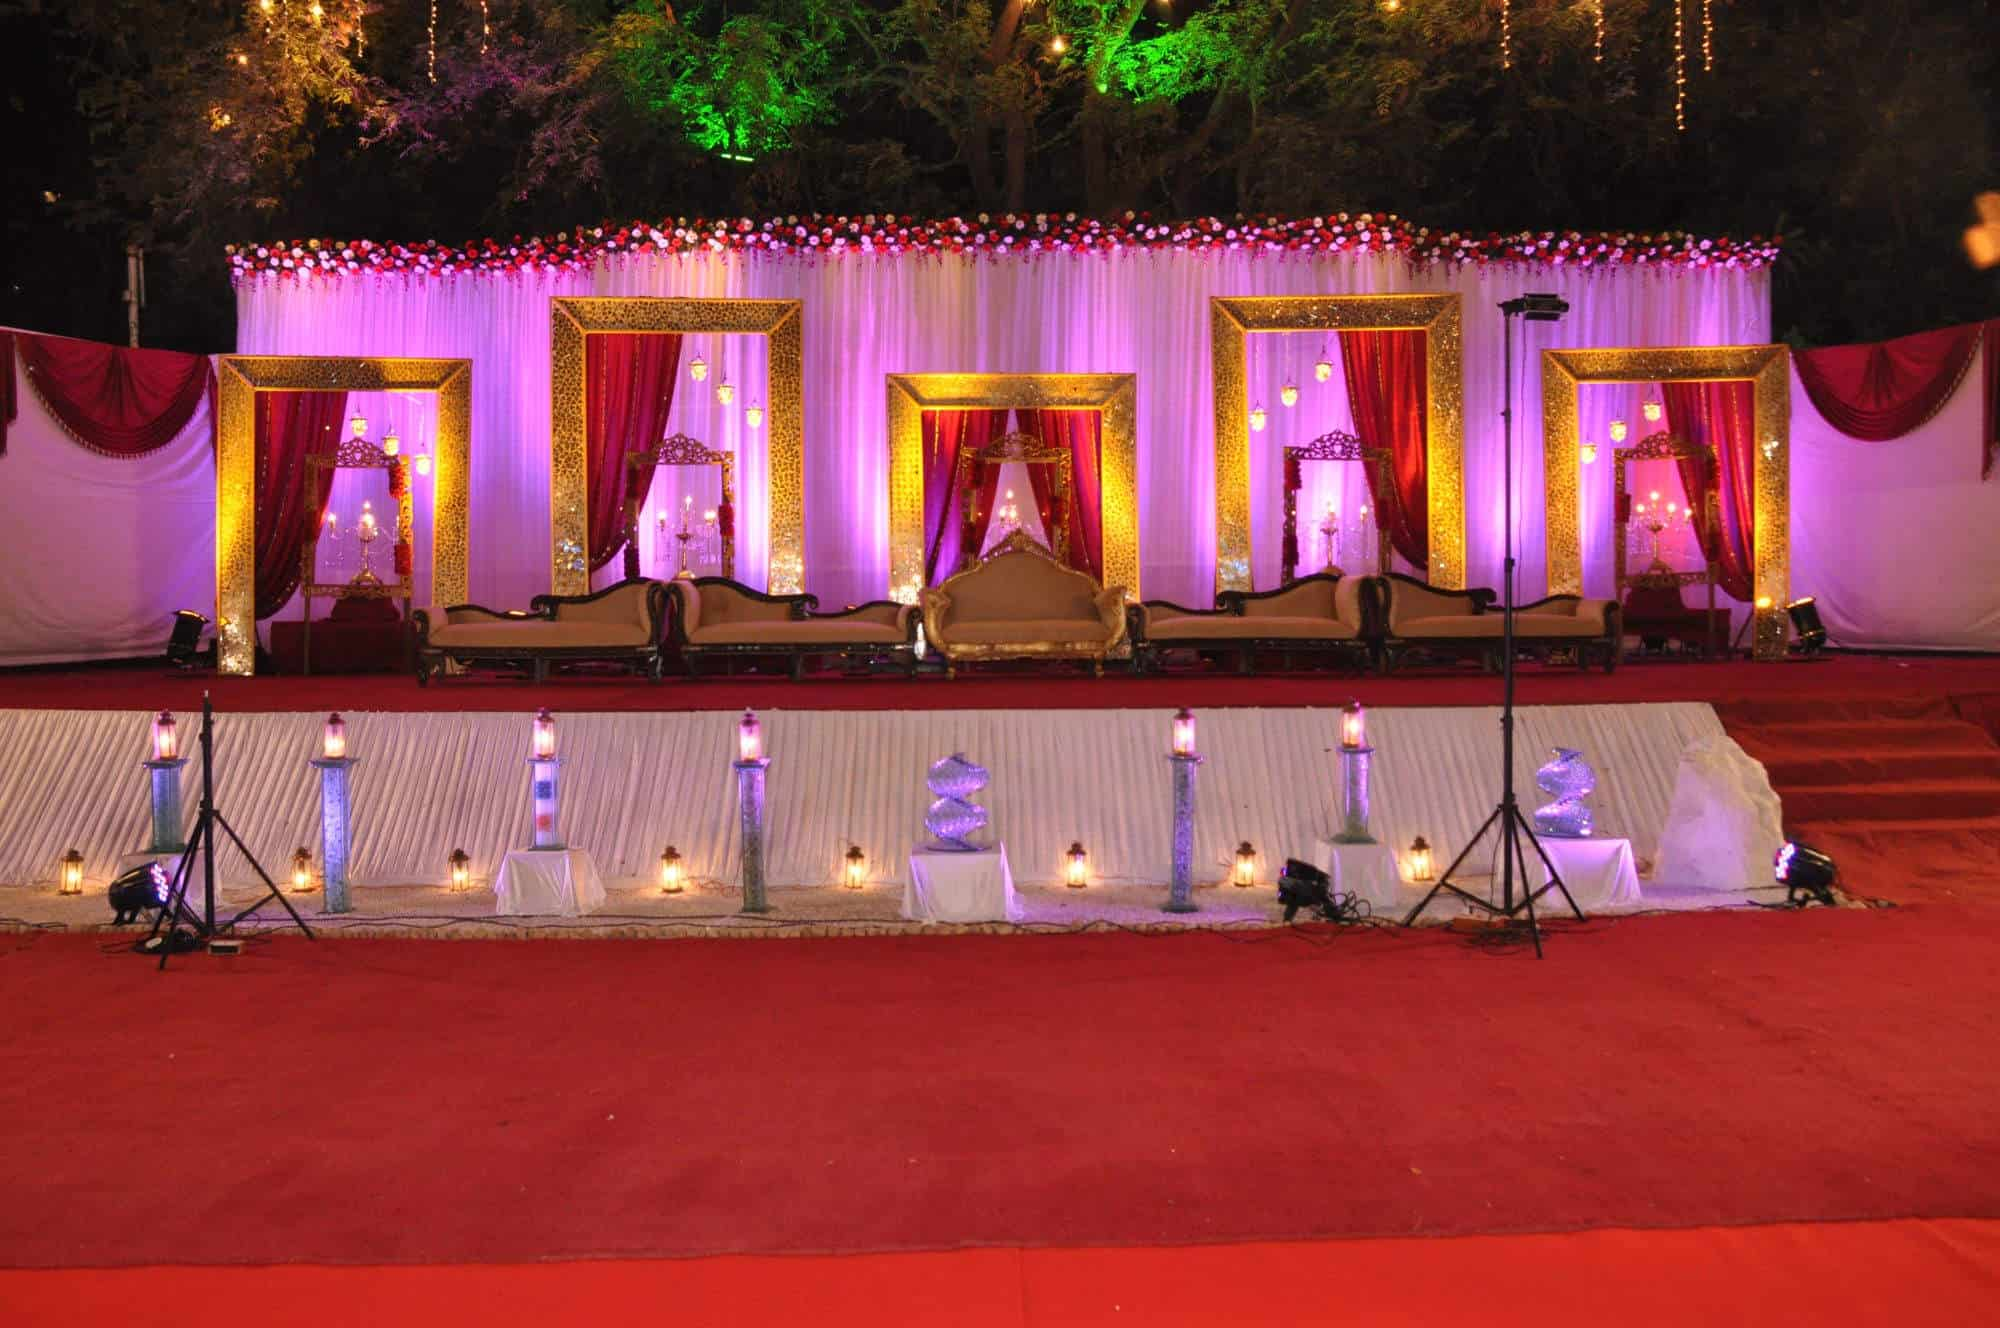 New sangam decorators photos dongri mumbai pictures images event organiser new sangam decorators photos dongri mumbai wedding decorators junglespirit